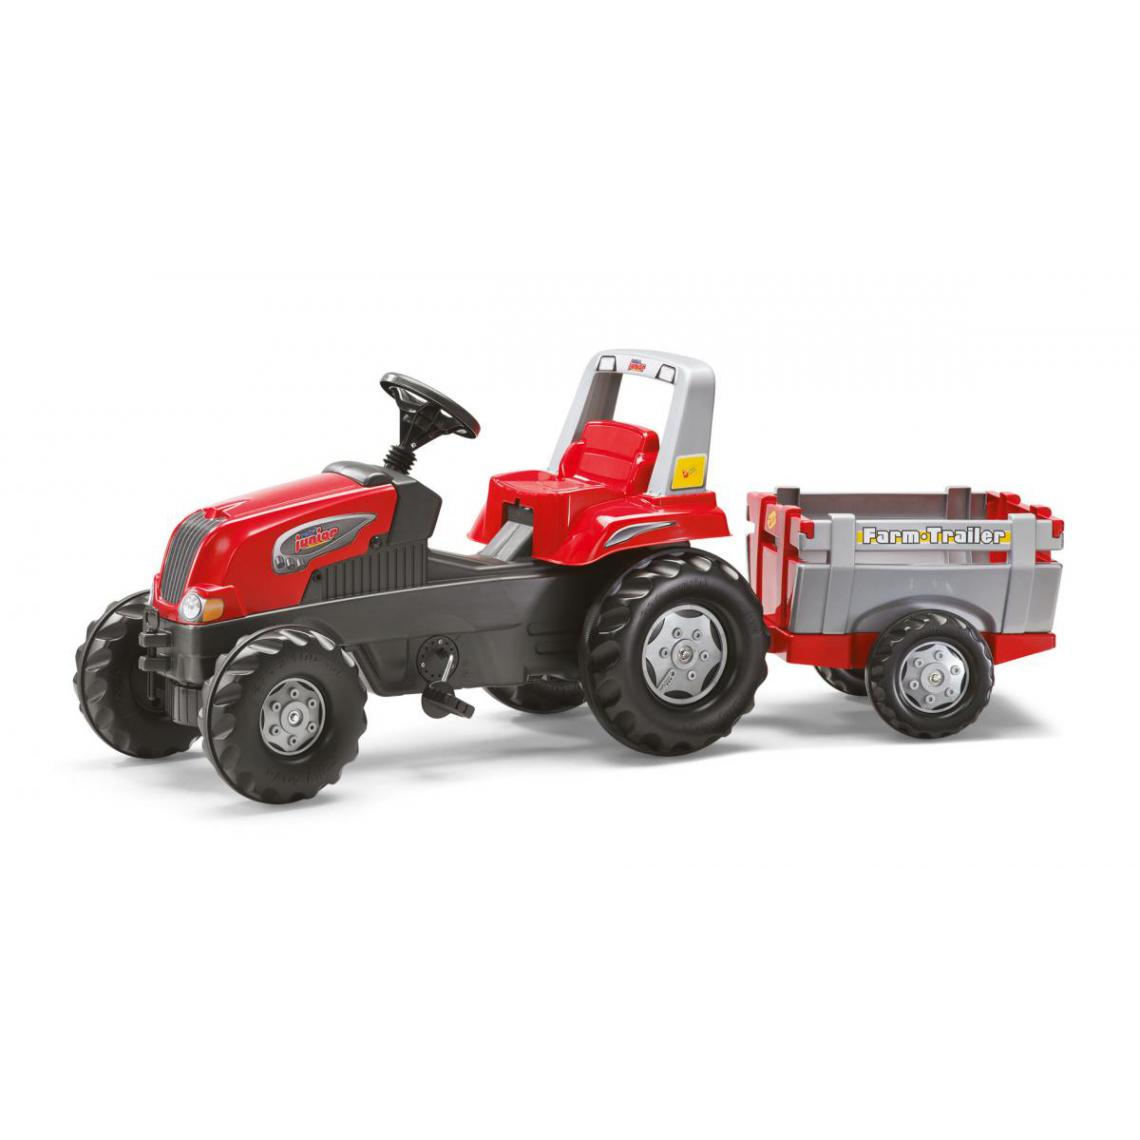 Rolly Toys Rolly Toys Tracteur a Pedales avec remorque rollyJunior RT